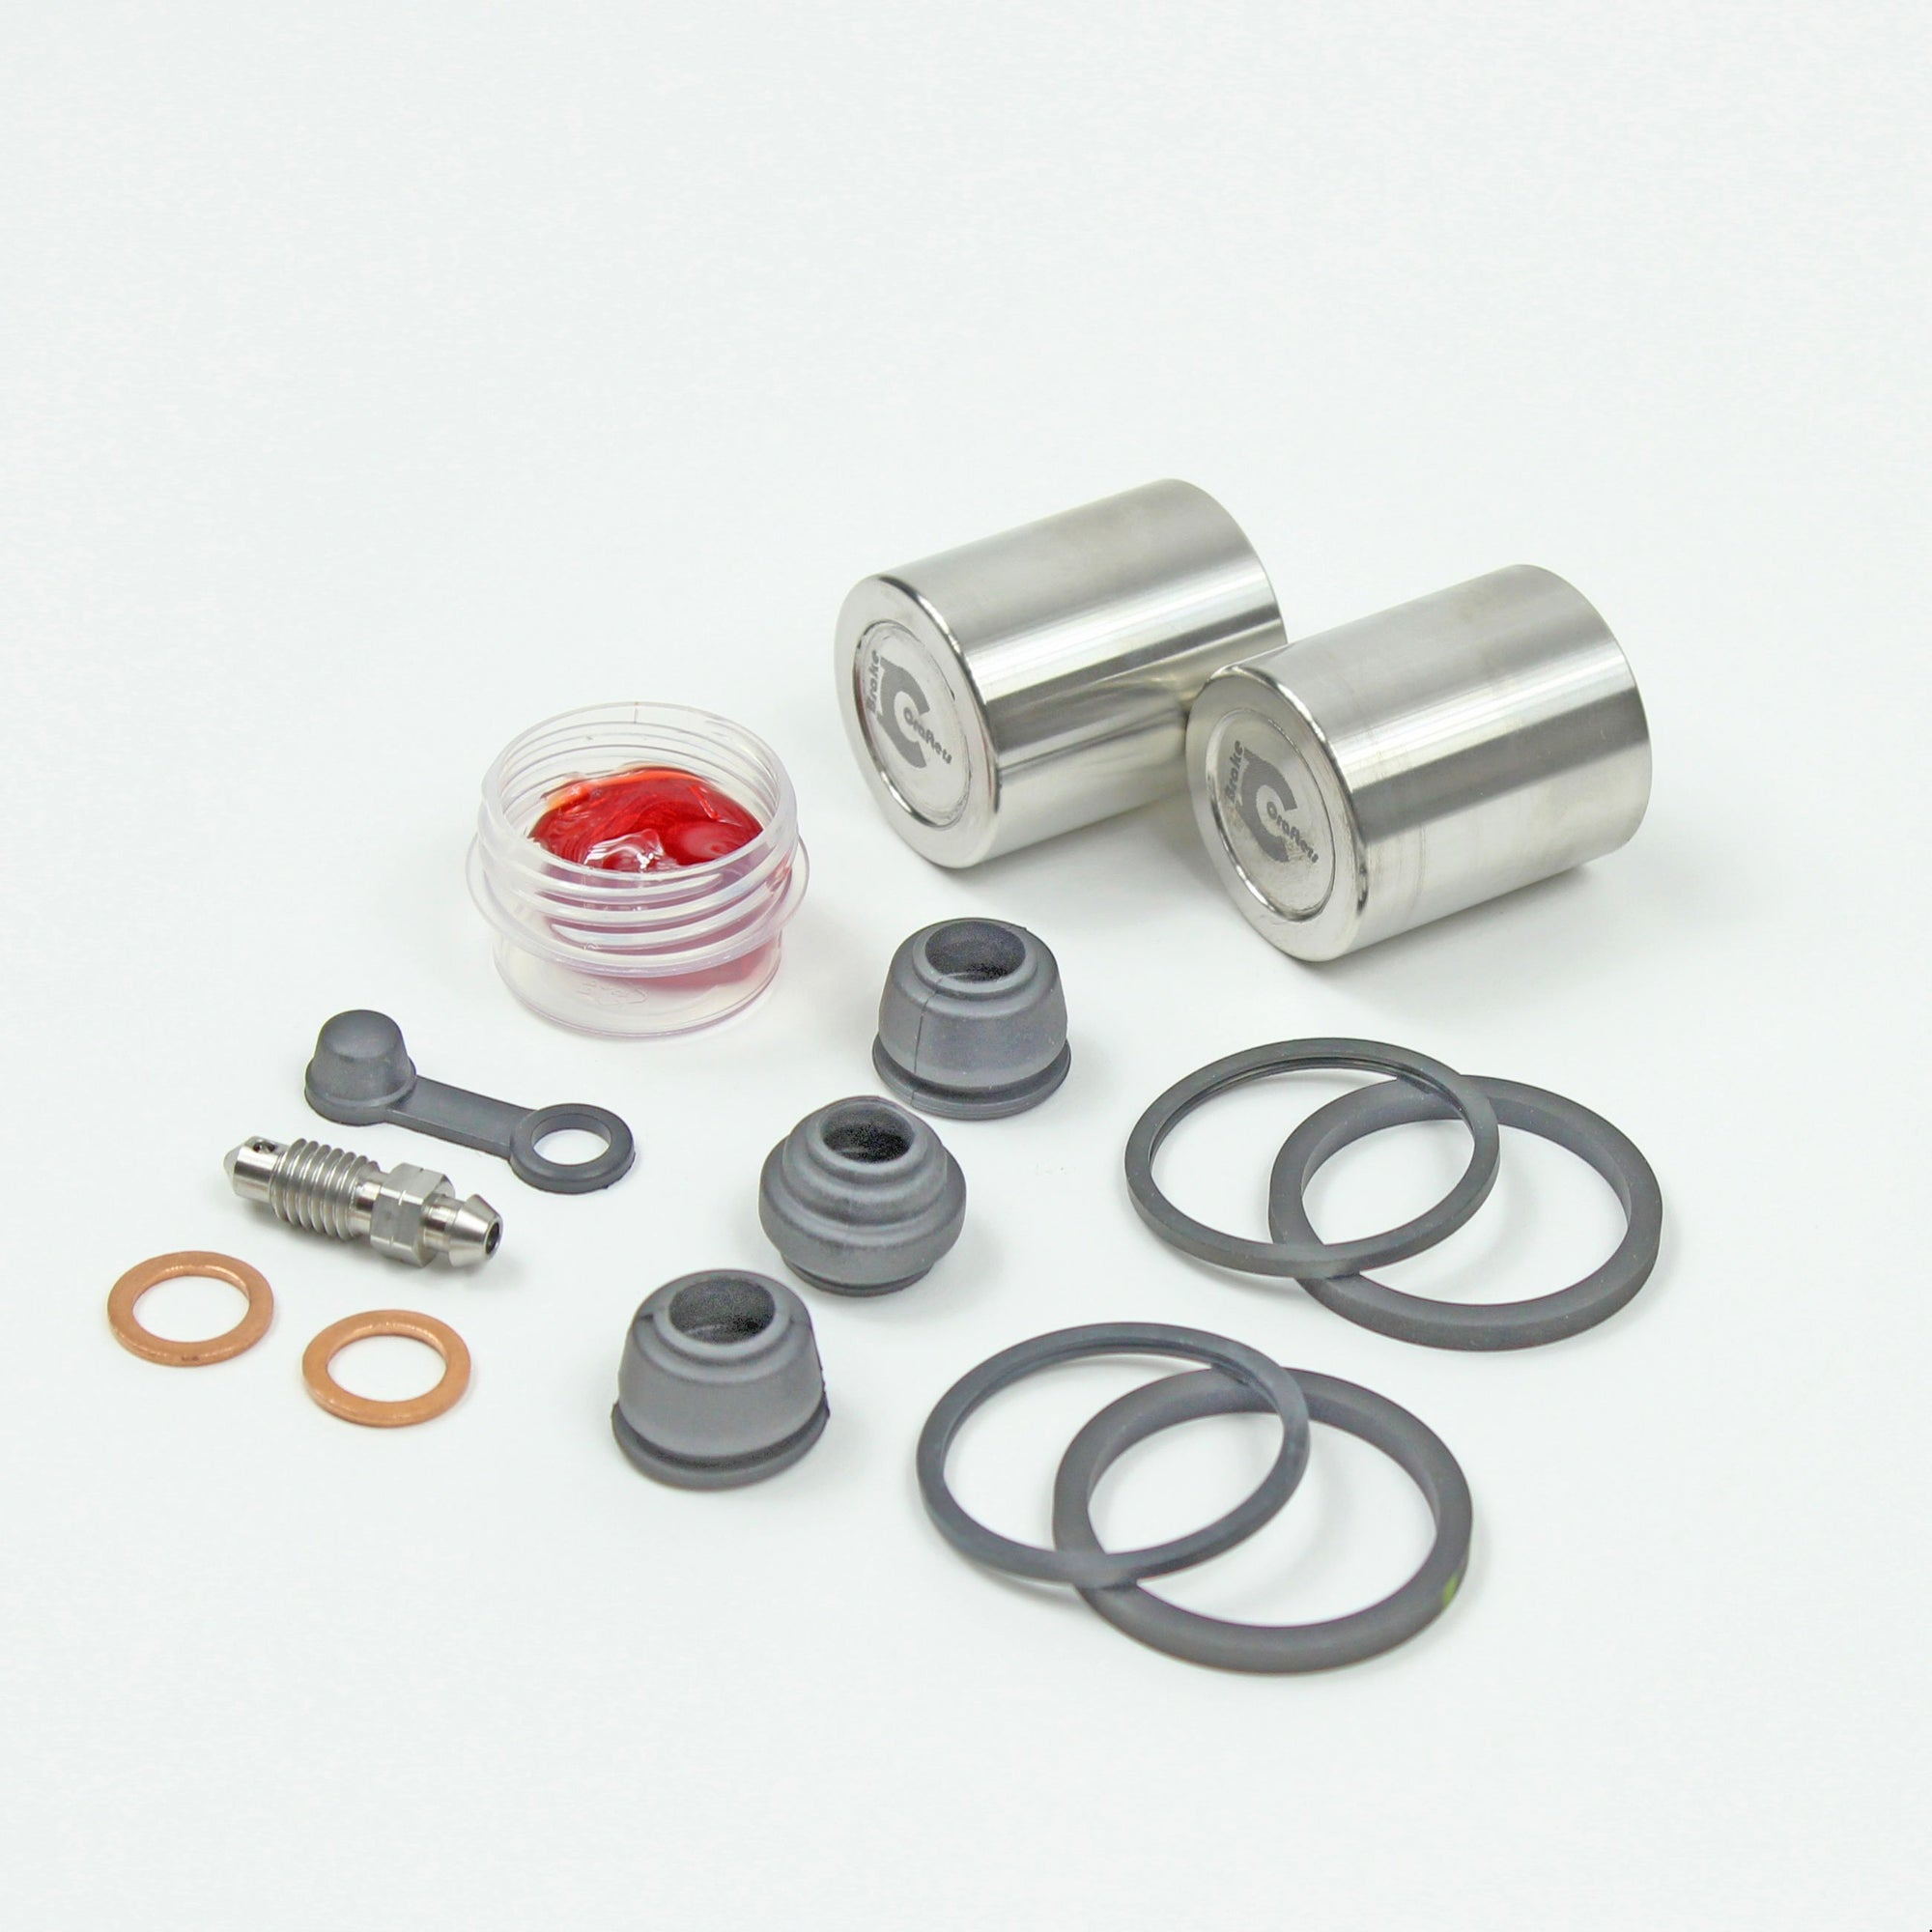 Brakecrafters Caliper Rebuild Kit 1984 - 1986 Honda VF1000 Interceptor - Front Brake Caliper Seal & Stainless Steel Piston Kit